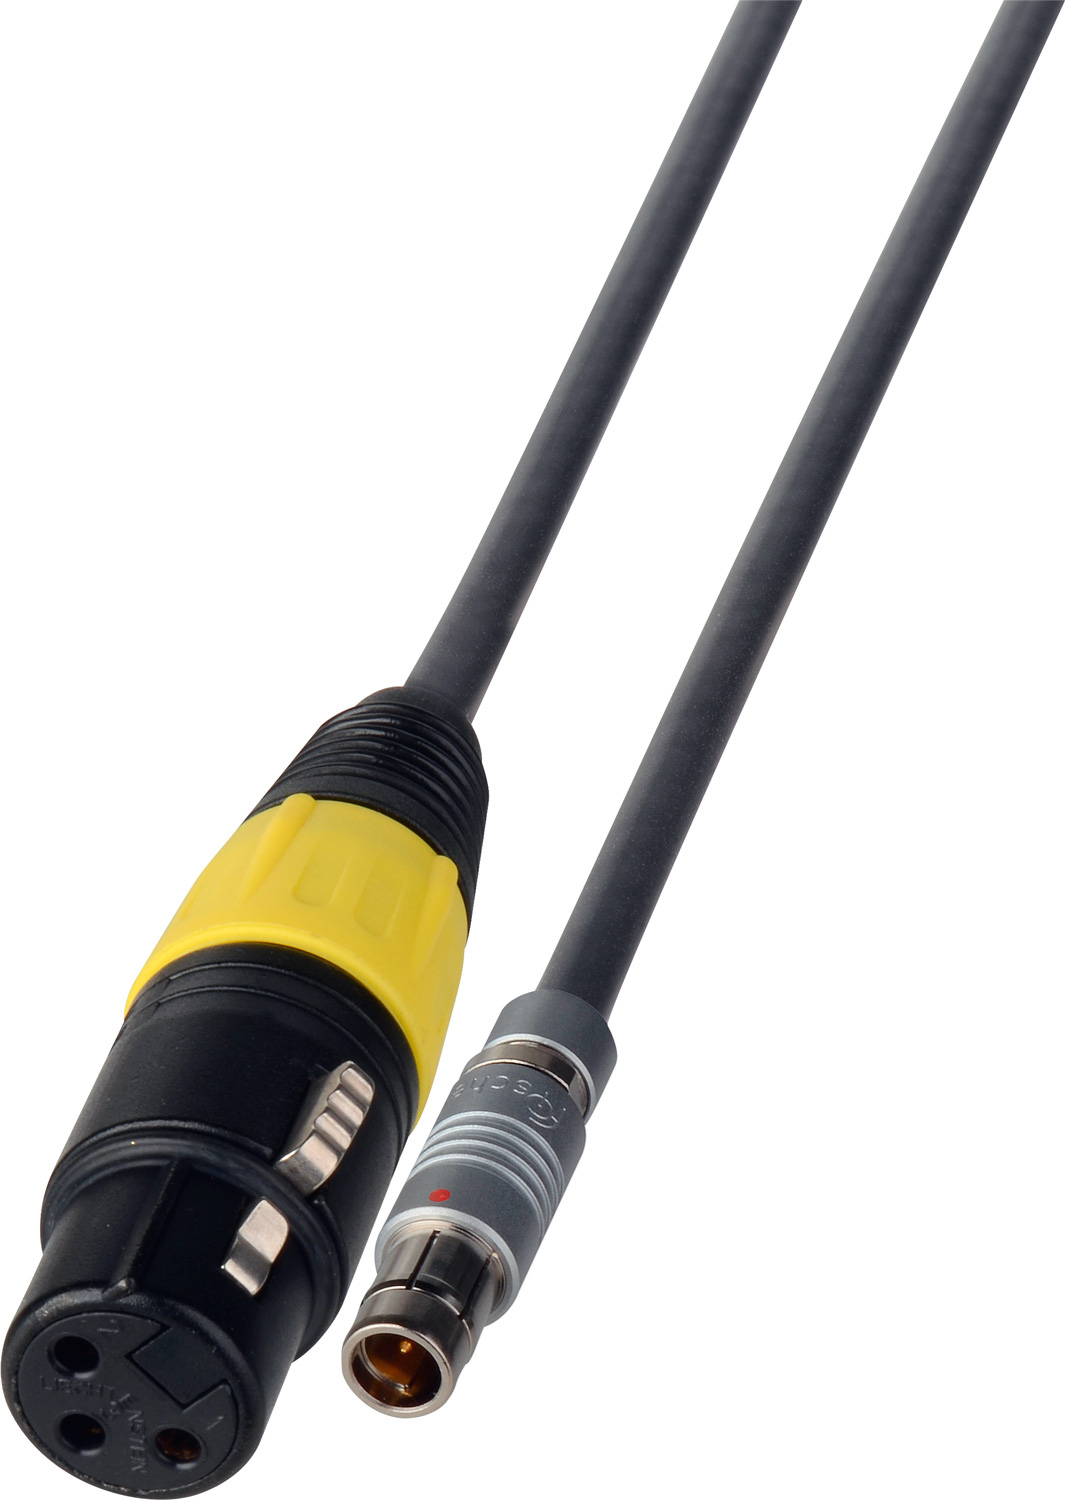 3 pin fischer to 3 pin xlr female 24v dc power cable 7 foot. Black Bedroom Furniture Sets. Home Design Ideas